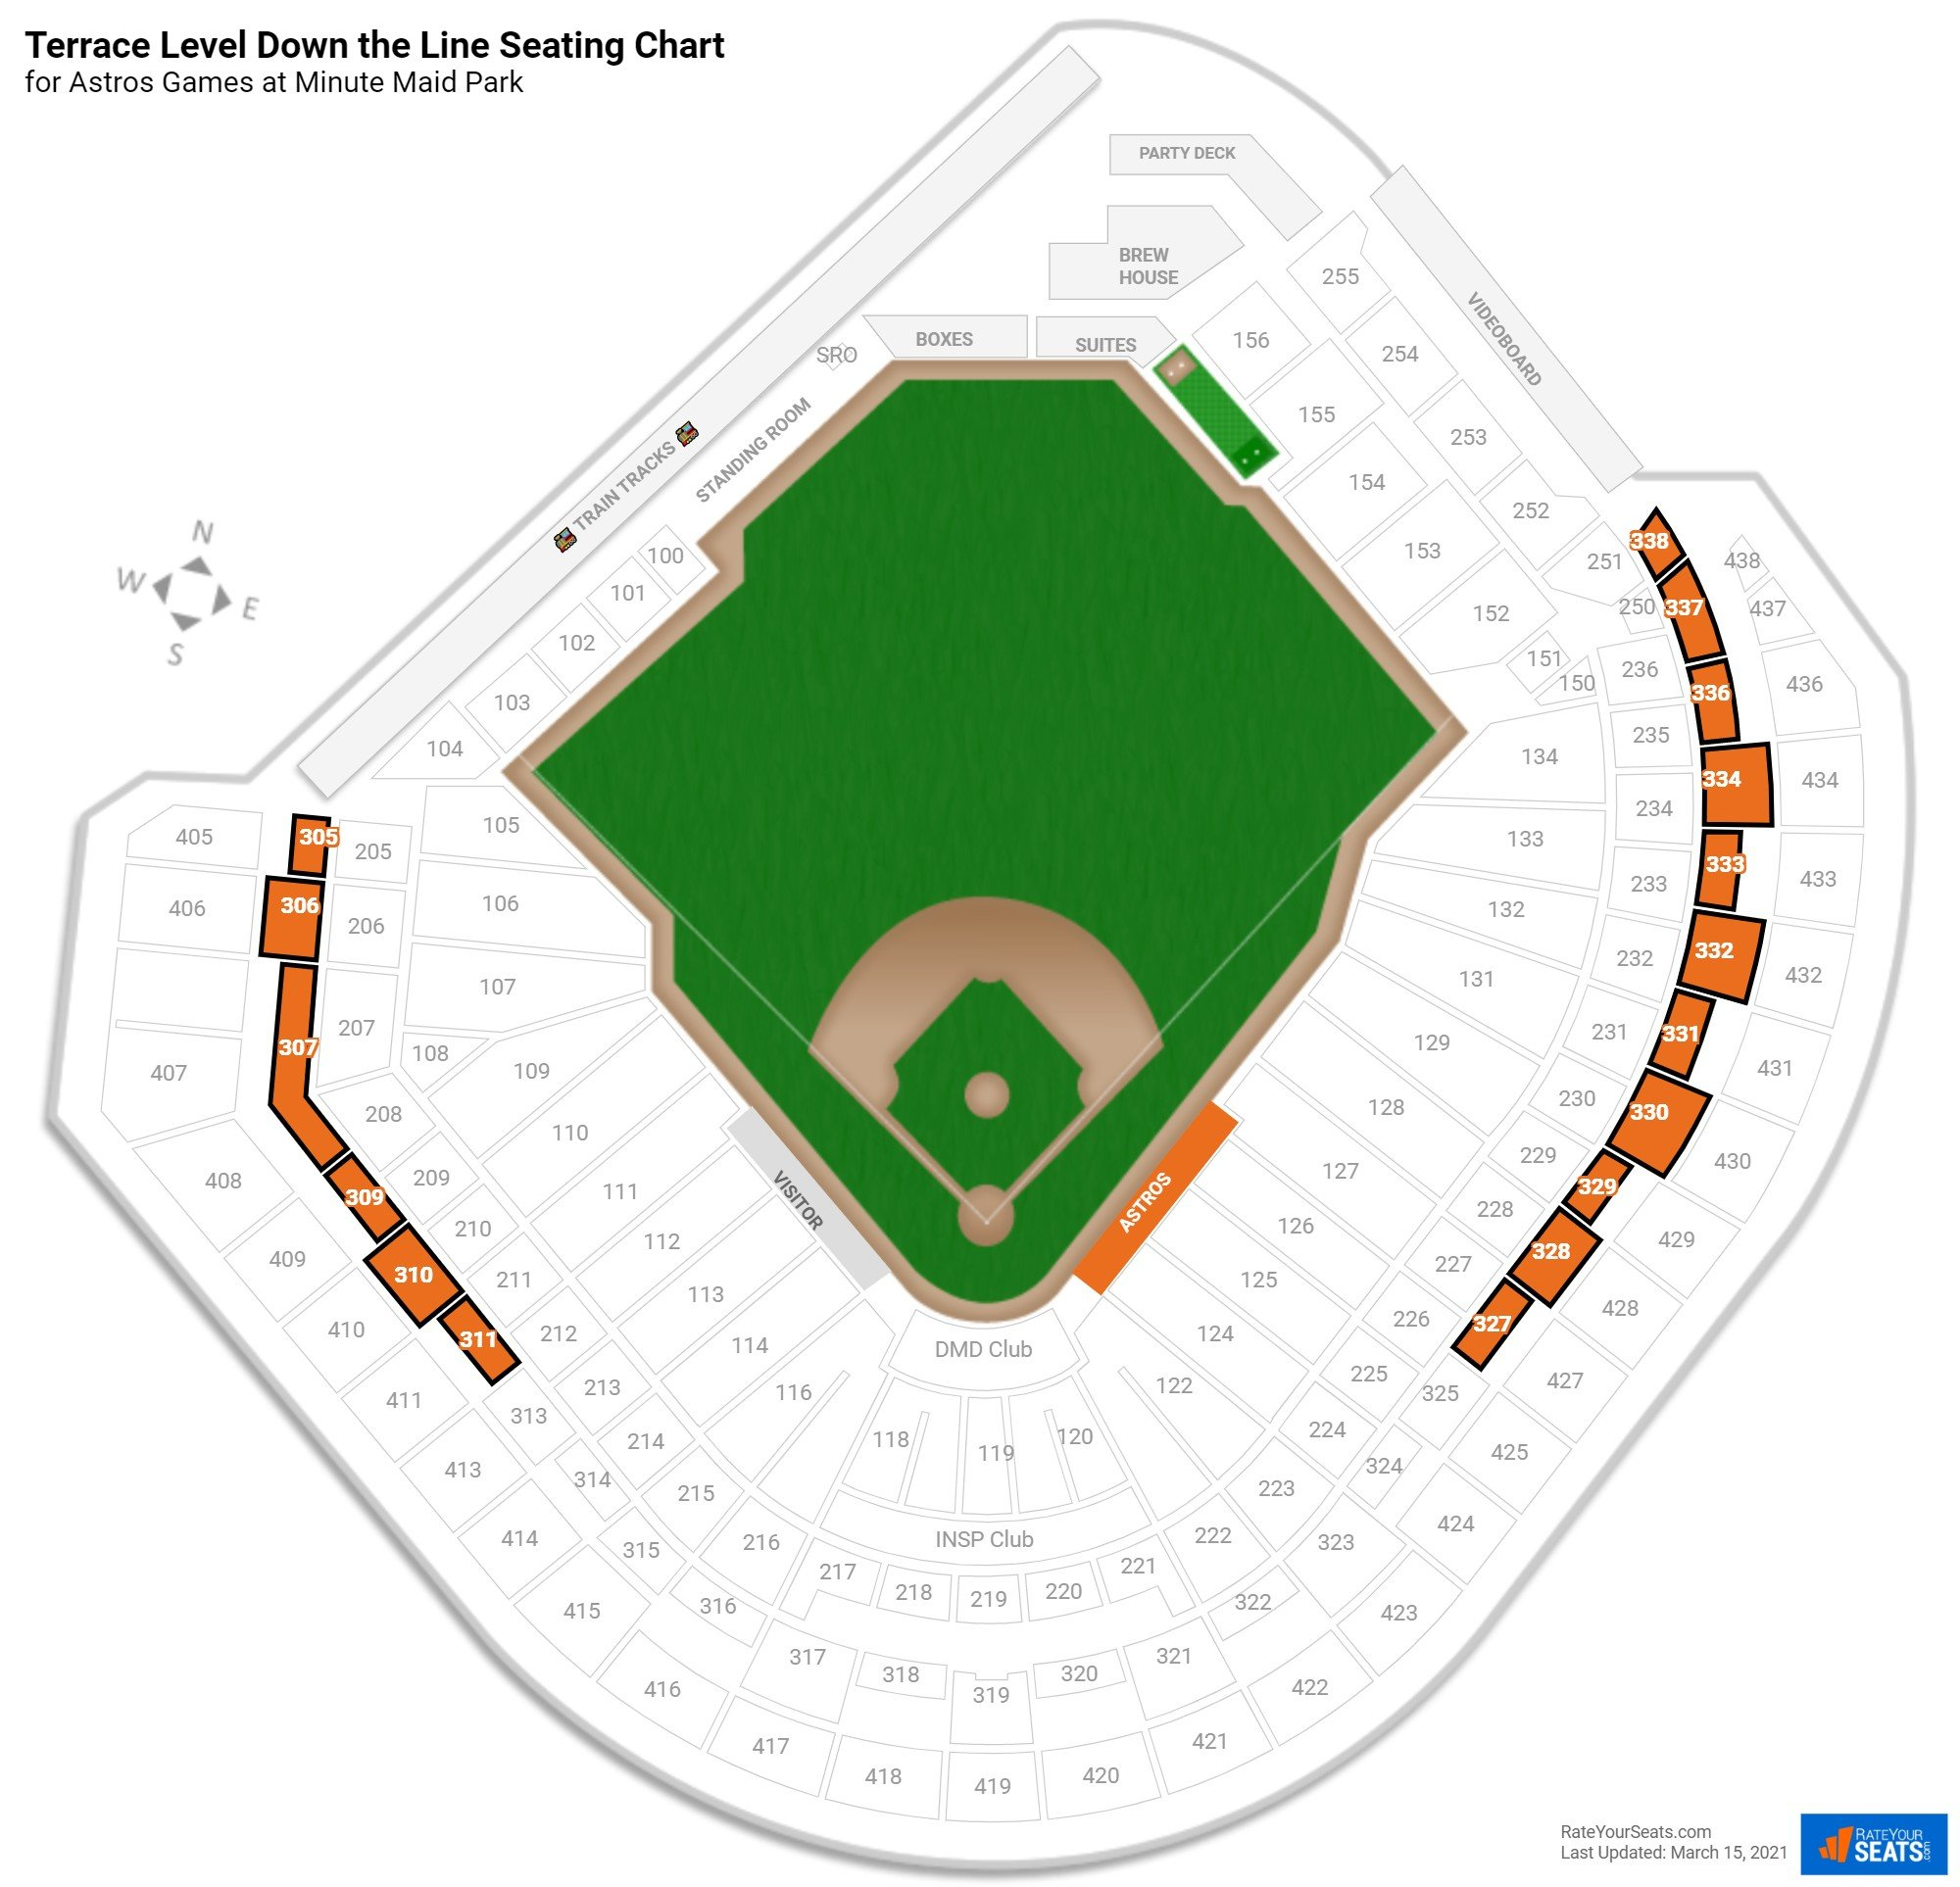 Minute Maid Park Terrace Level Down the Line seating chart